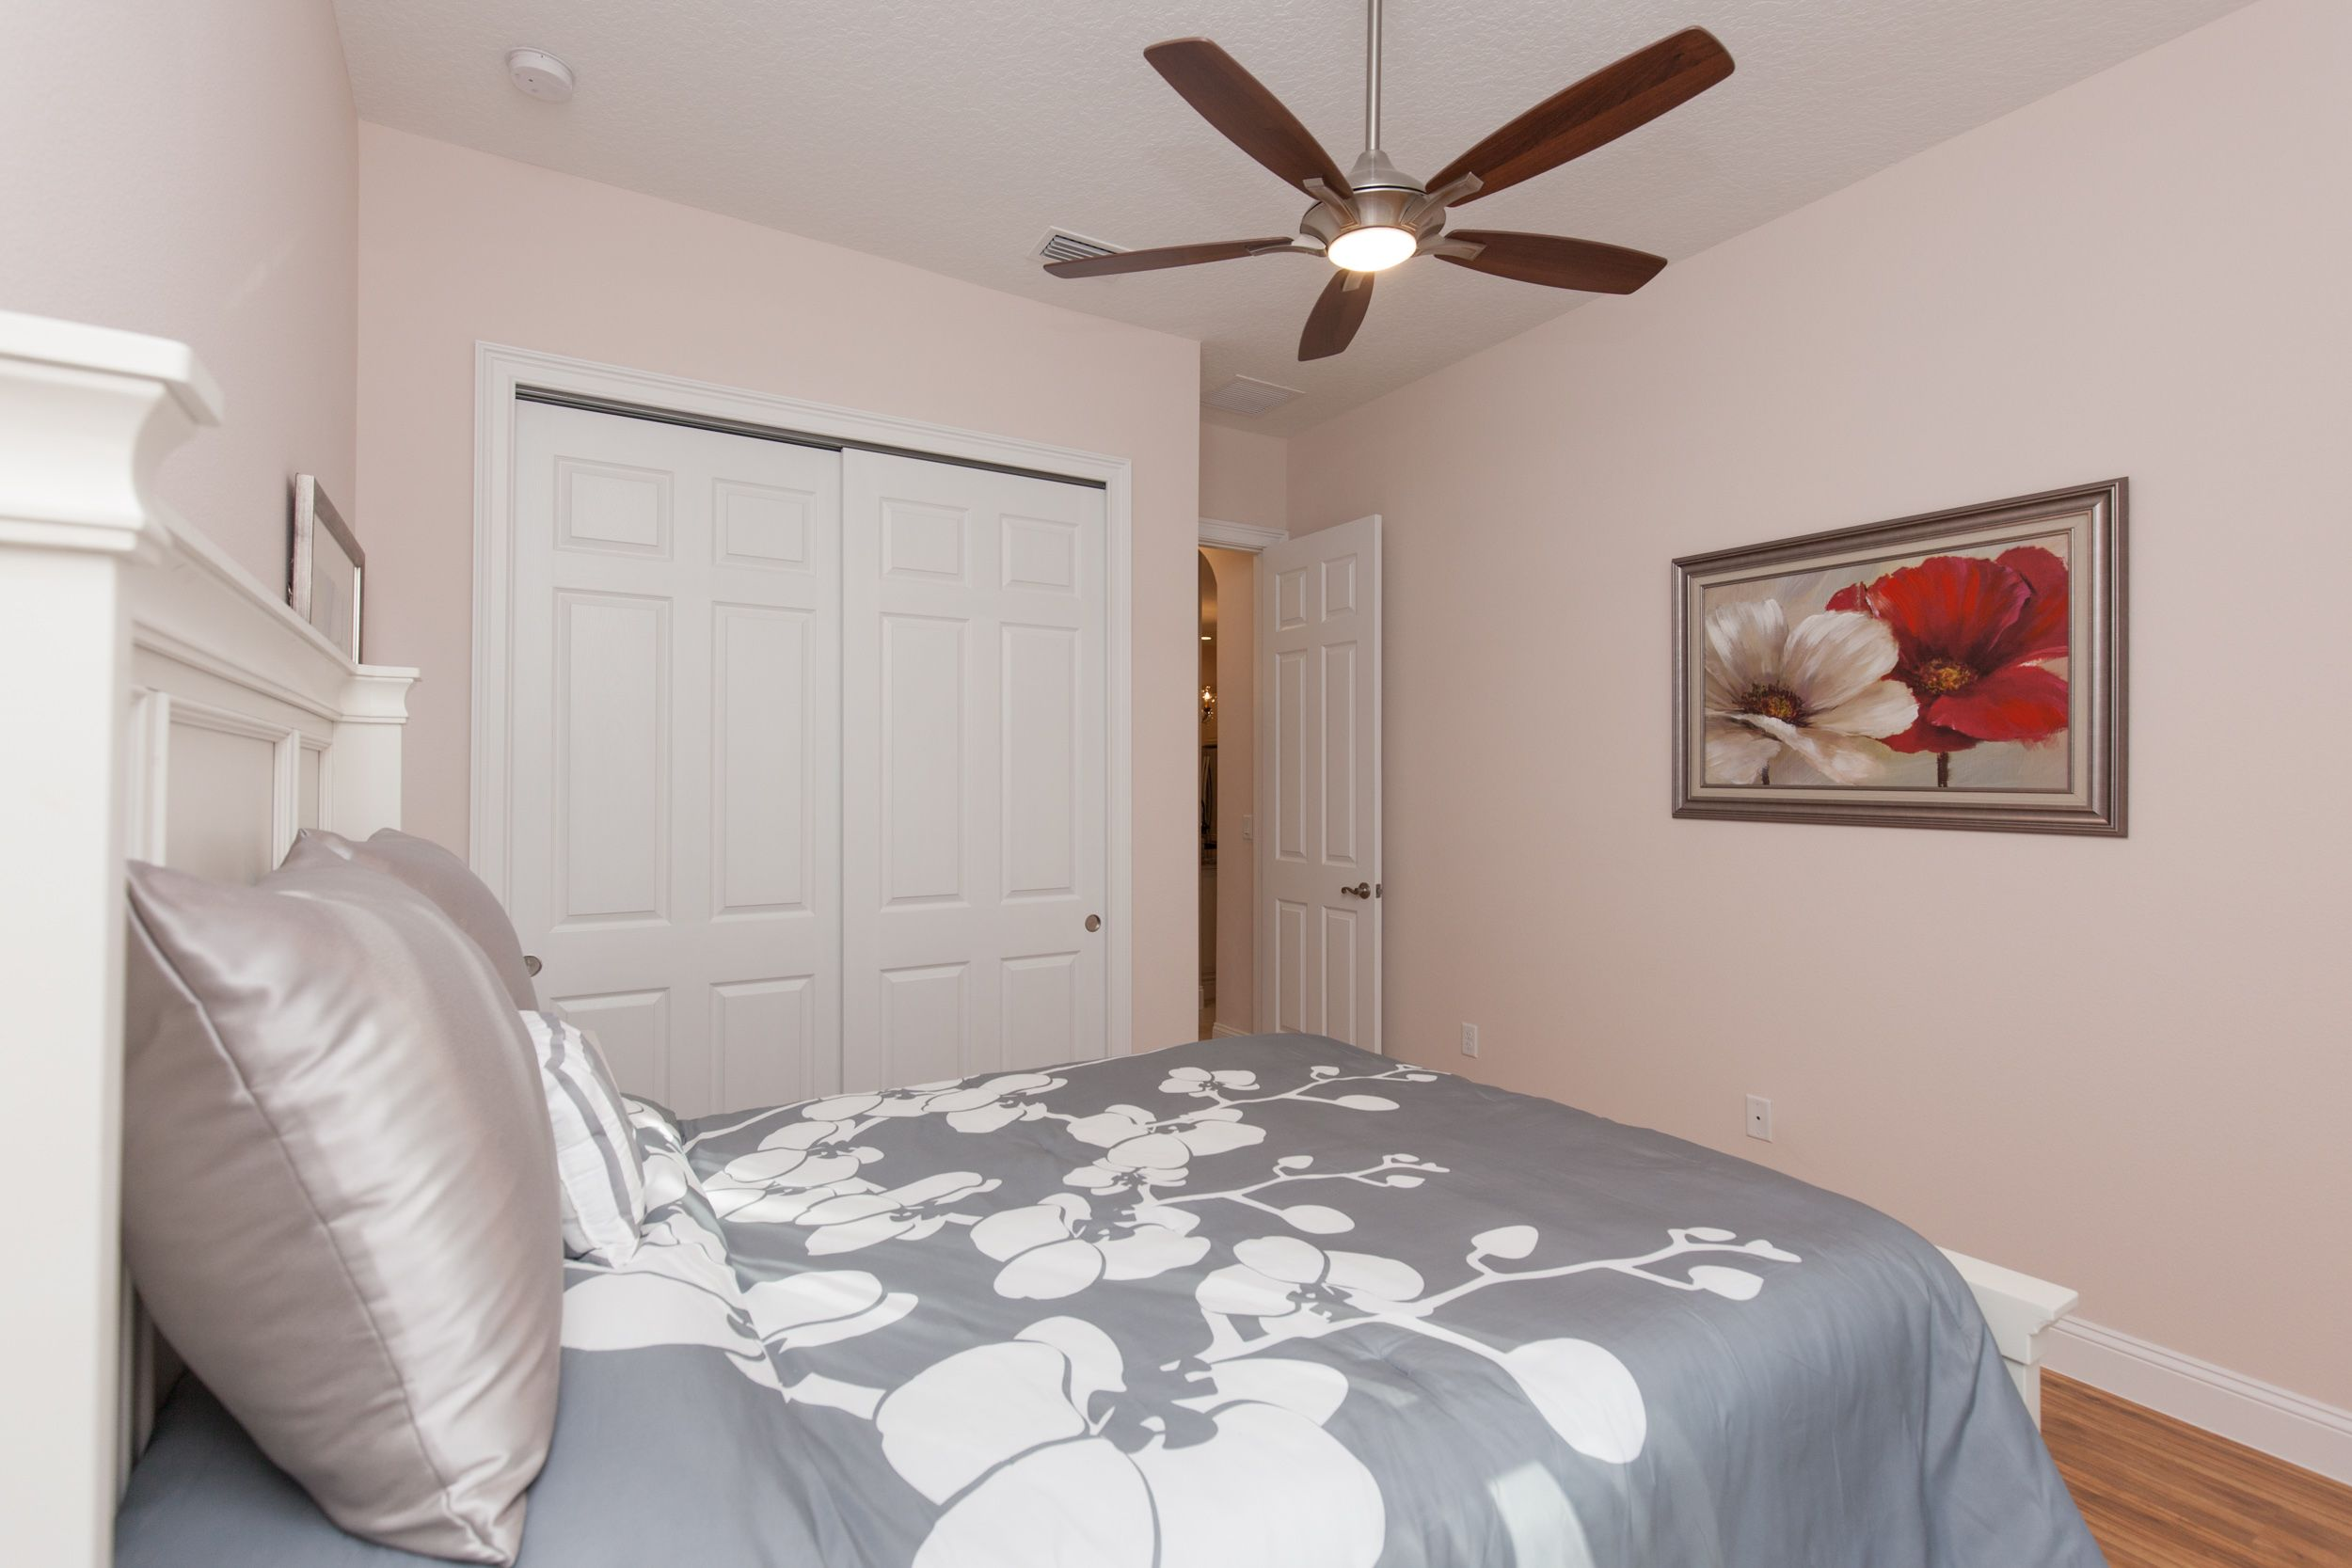 Bedroom featured in the ALISA. Certified Green home By Florida Green Construction